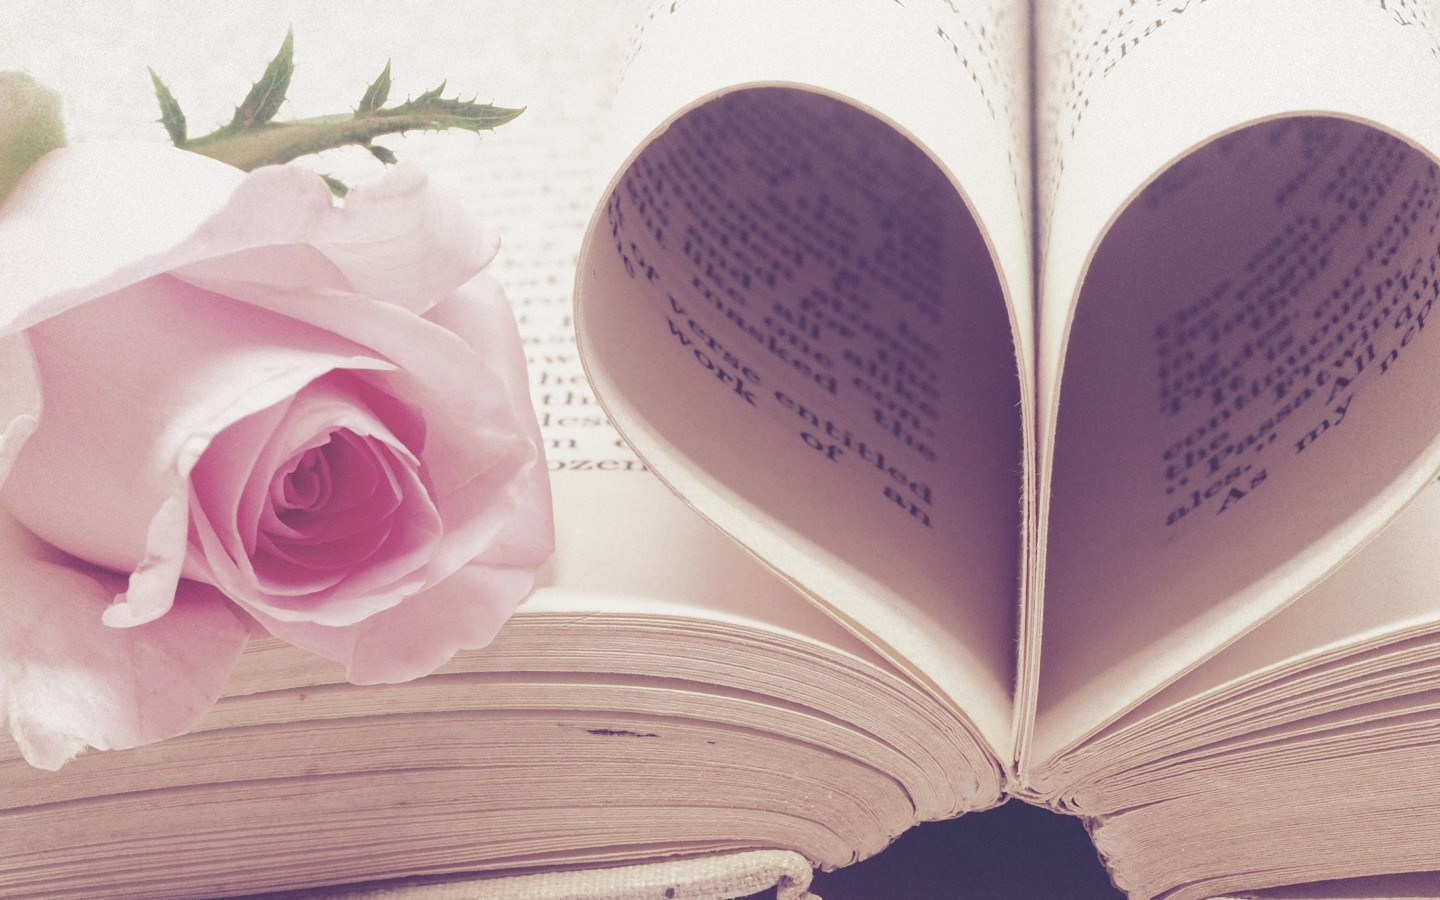 Rose flower and love book wallpaper 1440x900